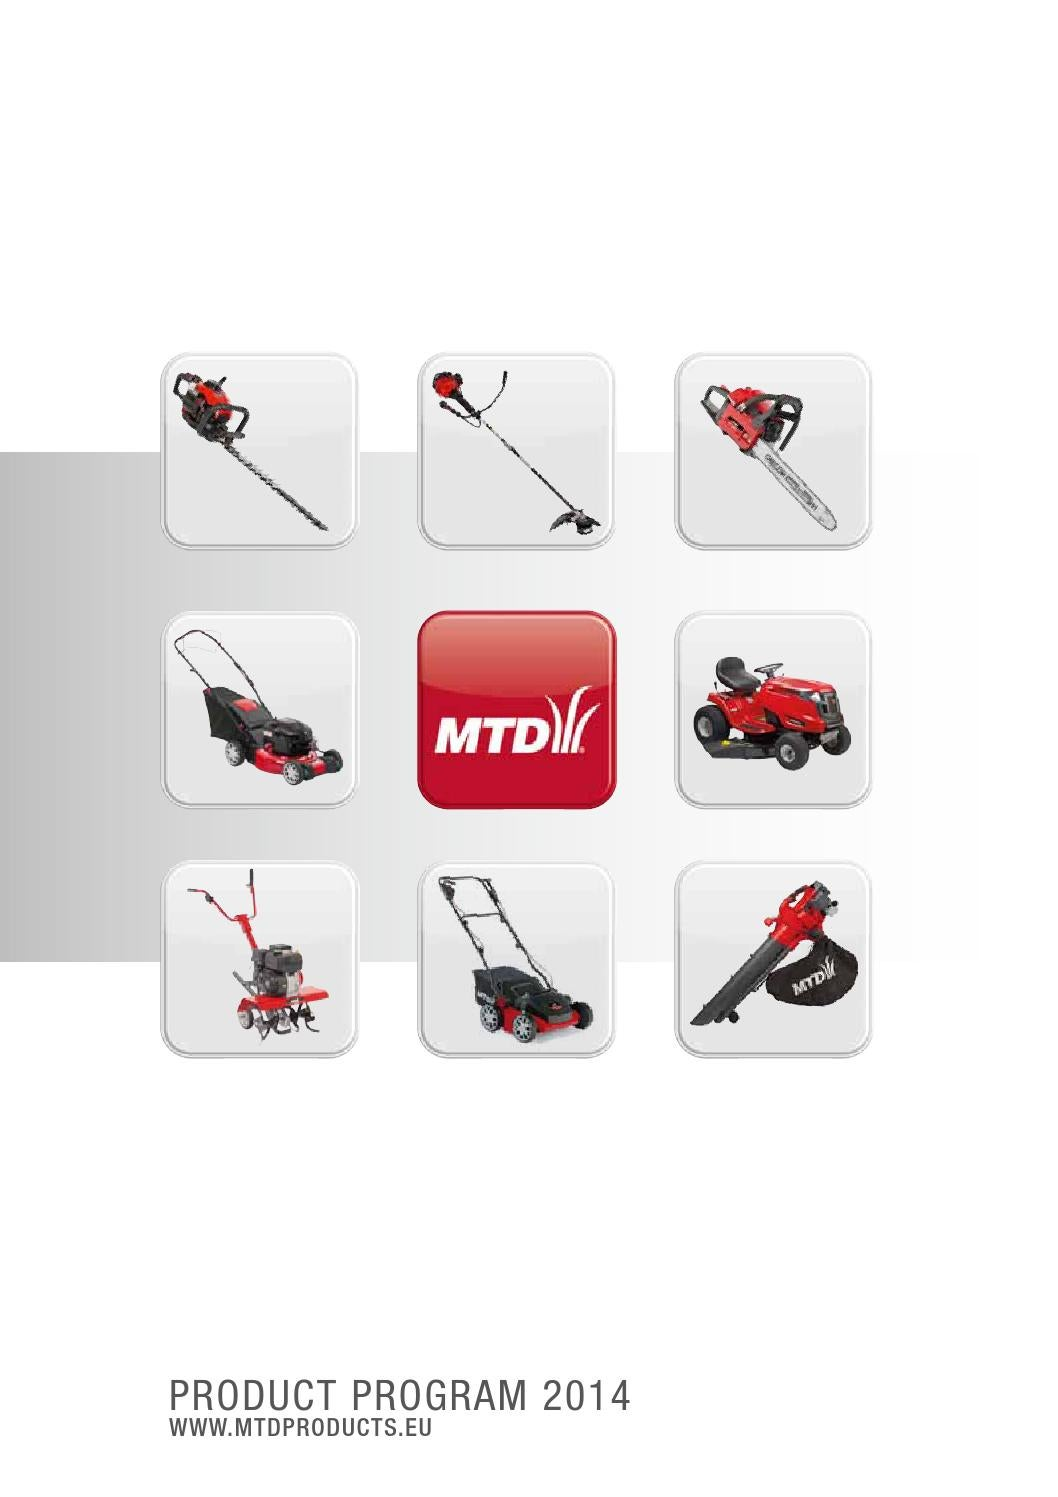 Mtd Catalogue Summer 2014 By Knooppunt Intermedia Issuu 38quot Lawn Tractor Page 5 Diagram And Parts List For Ridingmower